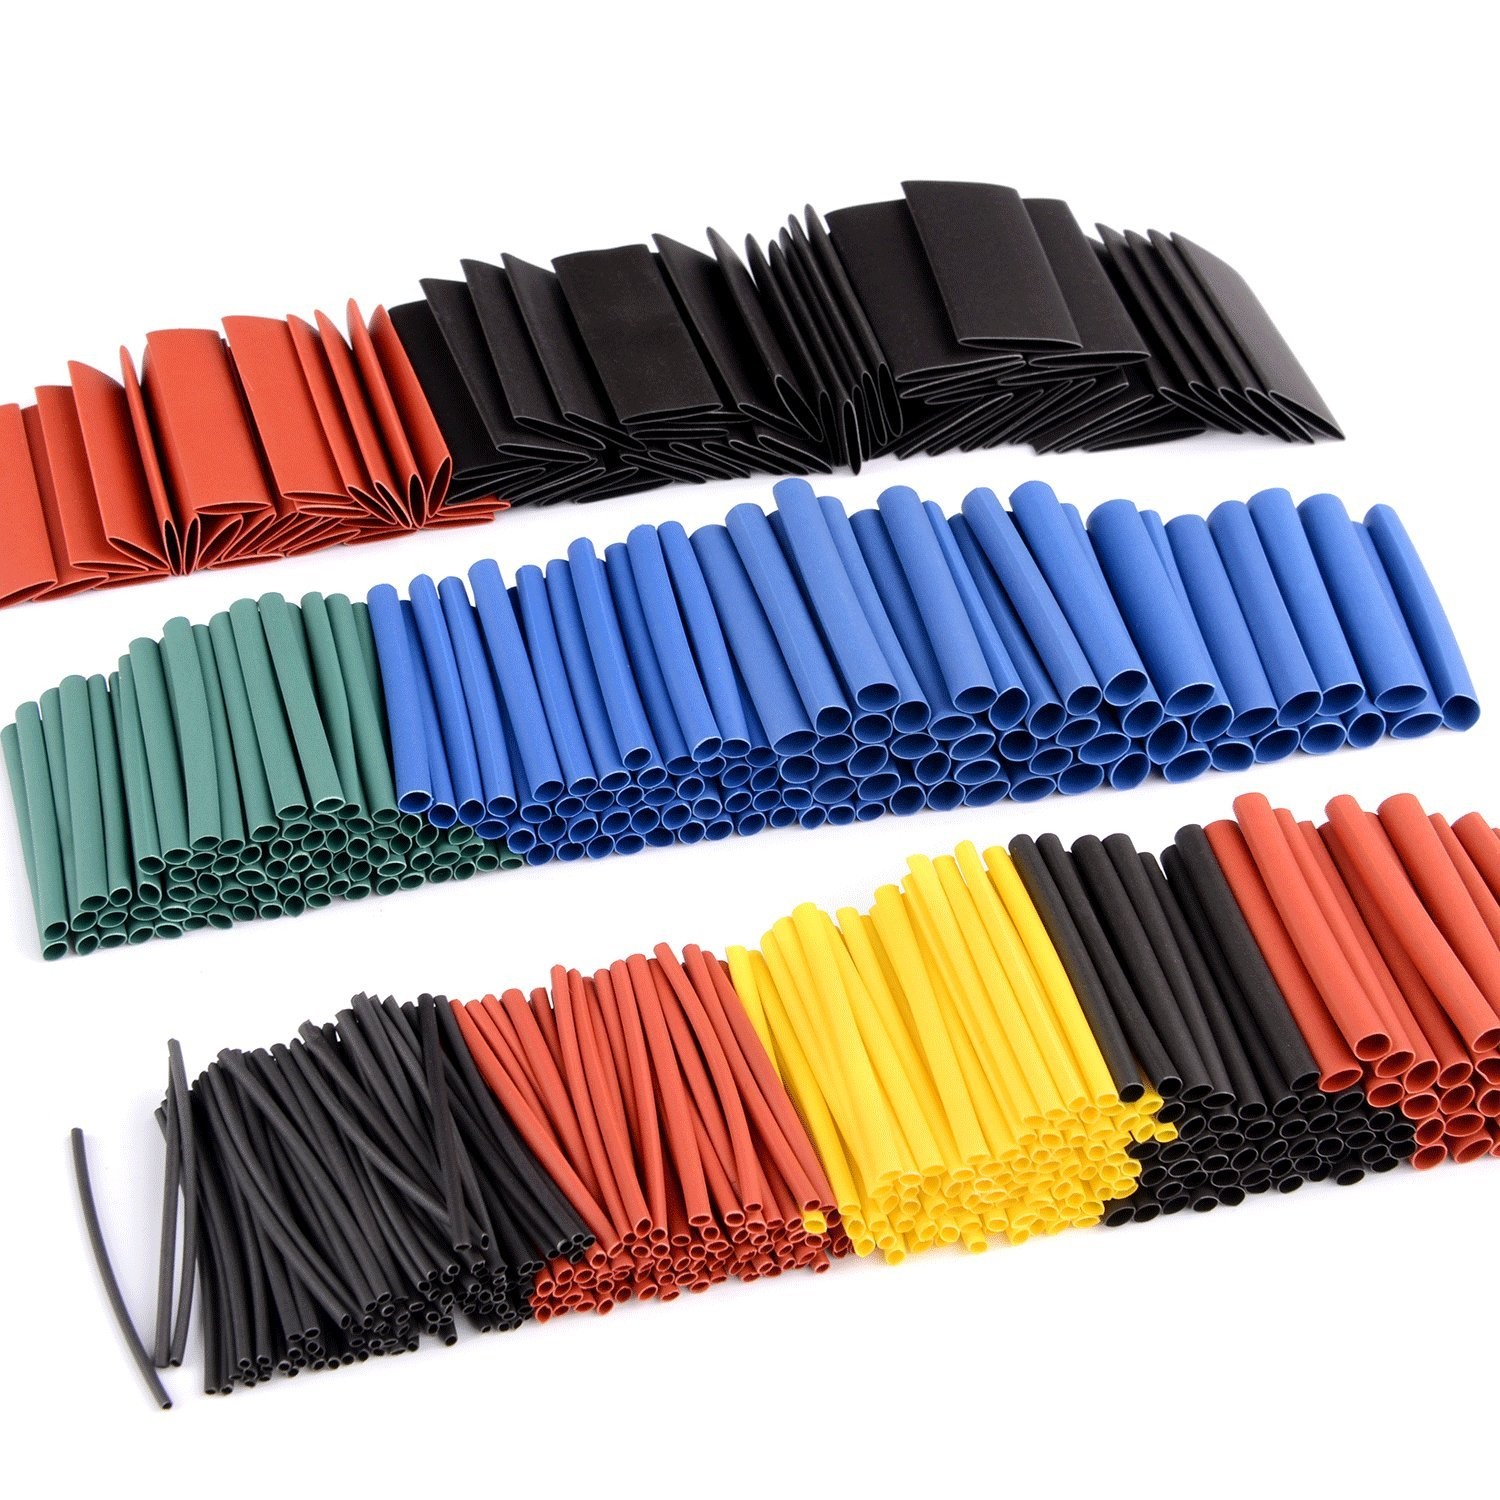 Nilight 270pcs 31 Heat Shrink Tubing Double Wall Adhesive Lined Wrapping Wiring Harness Wrap Assortment Kit 6 Size 2 Color Black Red Years Warranty 50099r